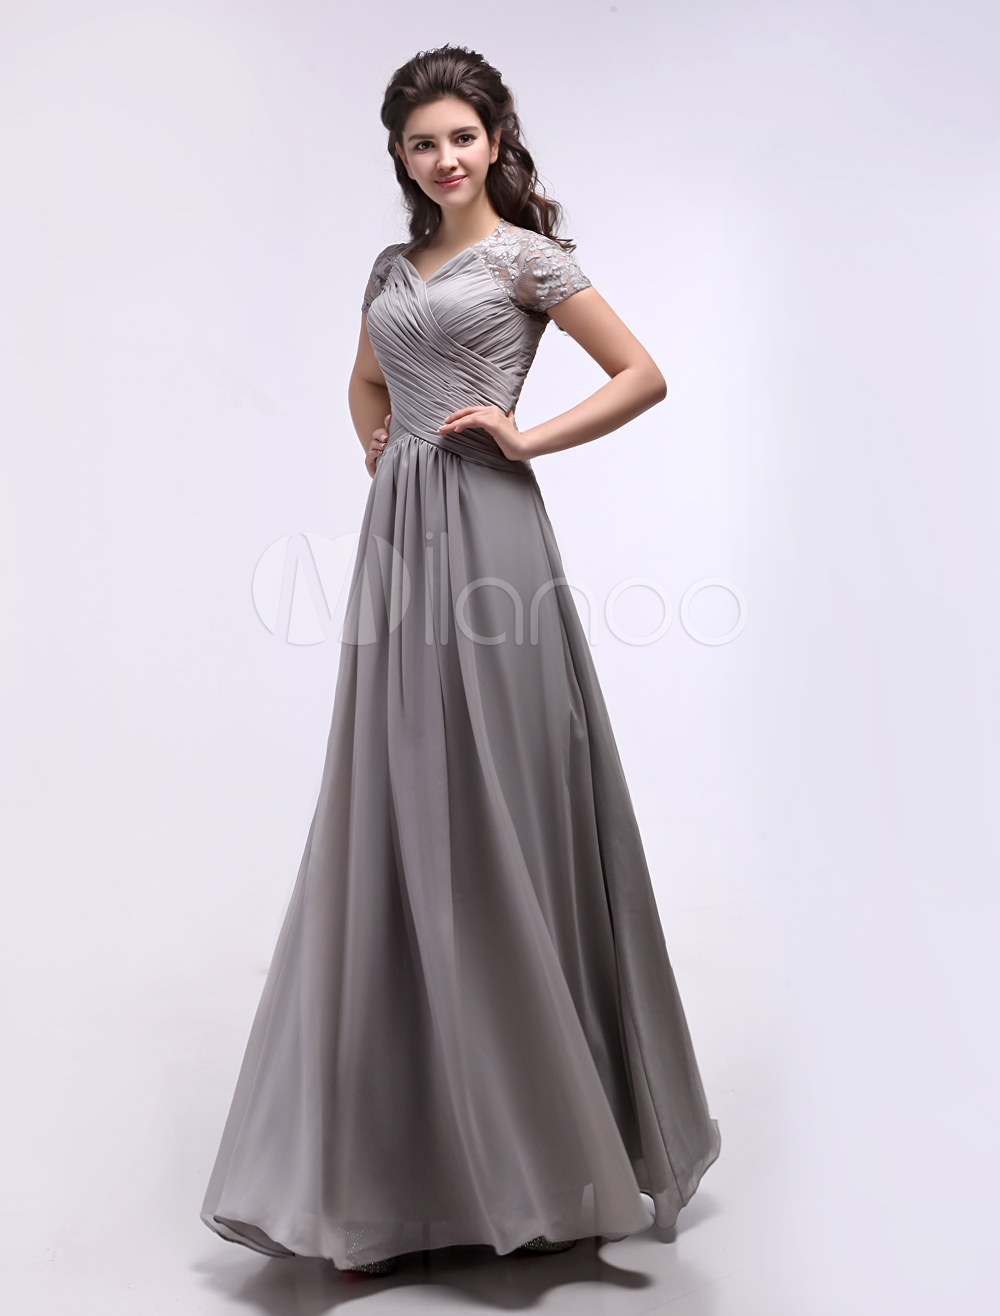 Gray Evening Dress Cut-Out Twist Ruched Floor-Length Lace Prom Dress Wedding Guest Dress